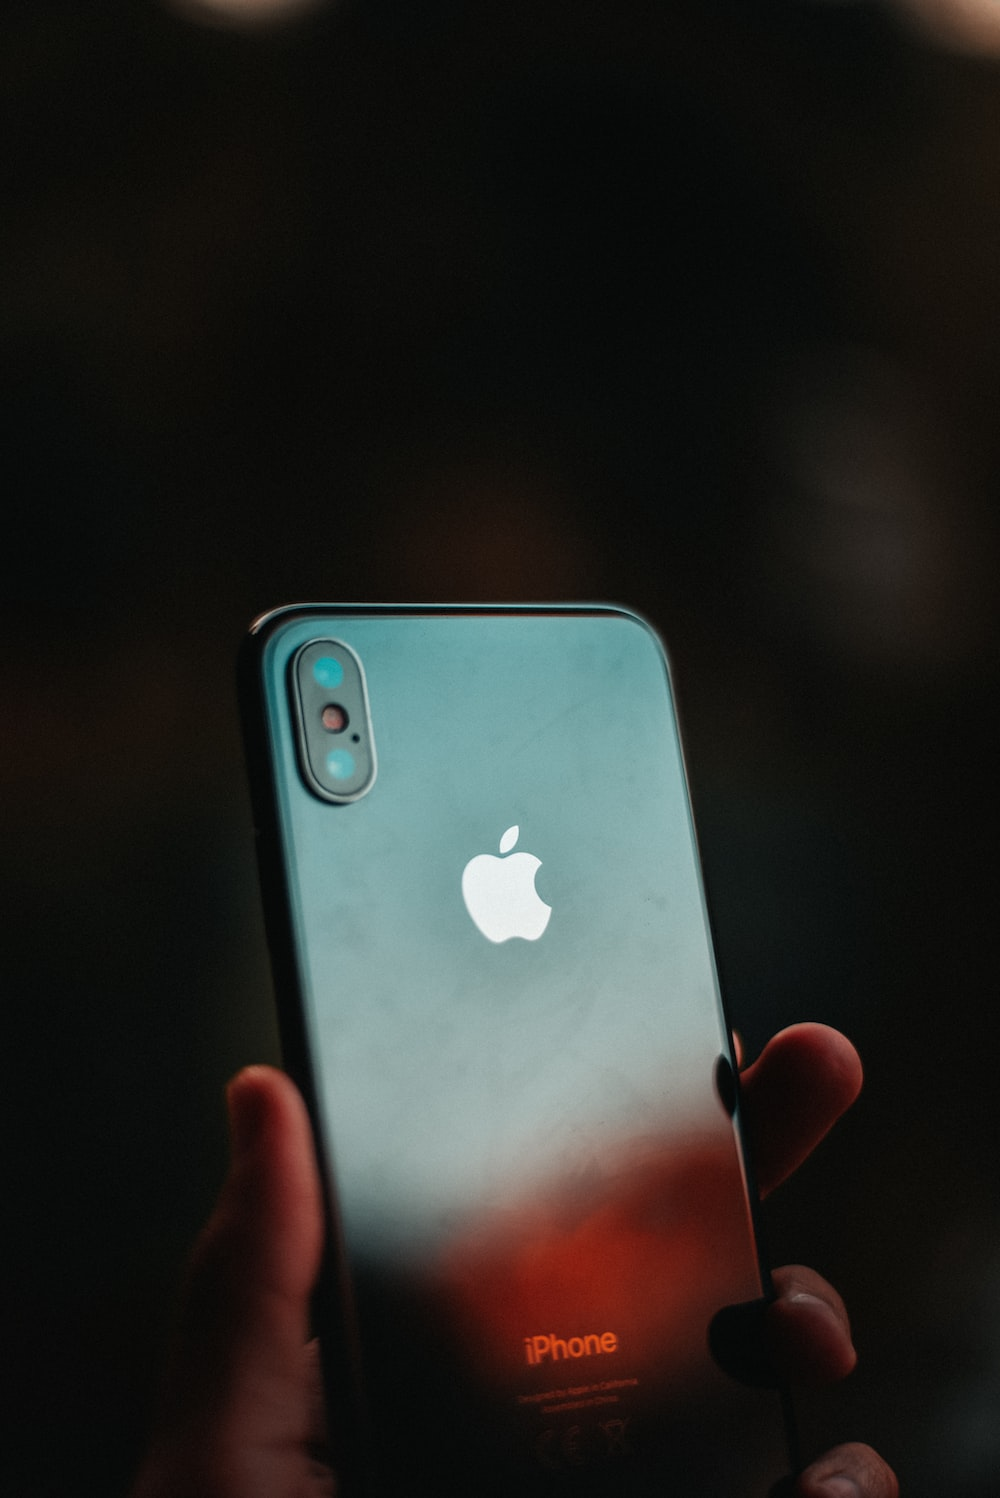 post-2018 iPhone in person's hand